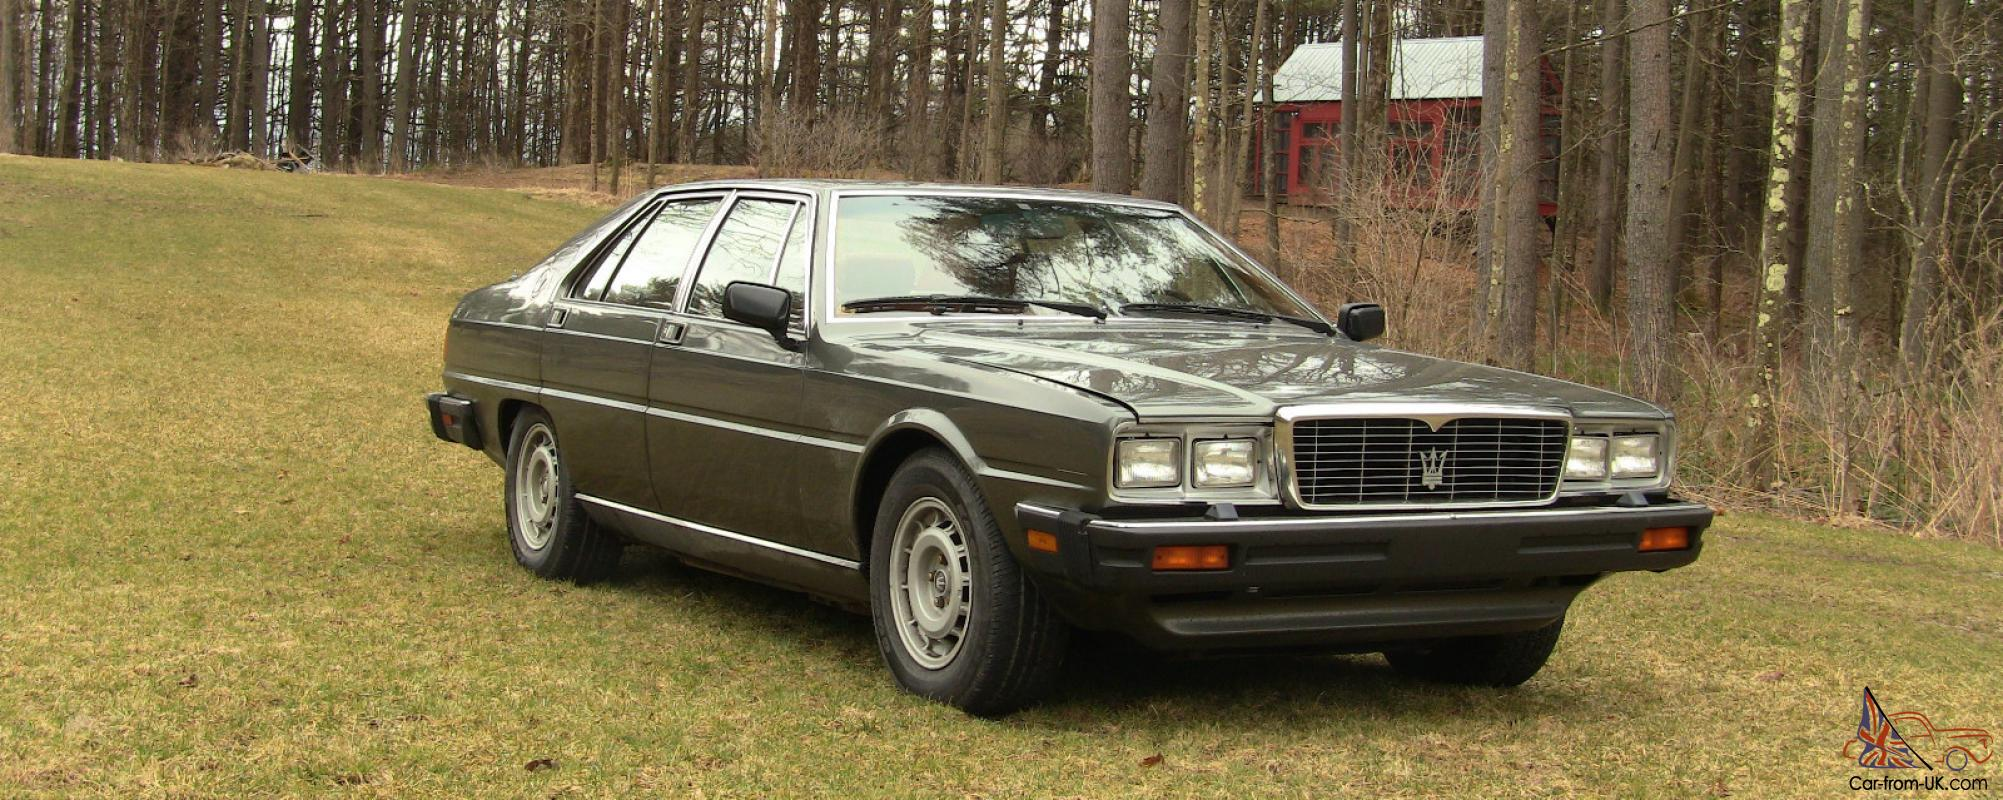 1985 maserati quattroporte for sale